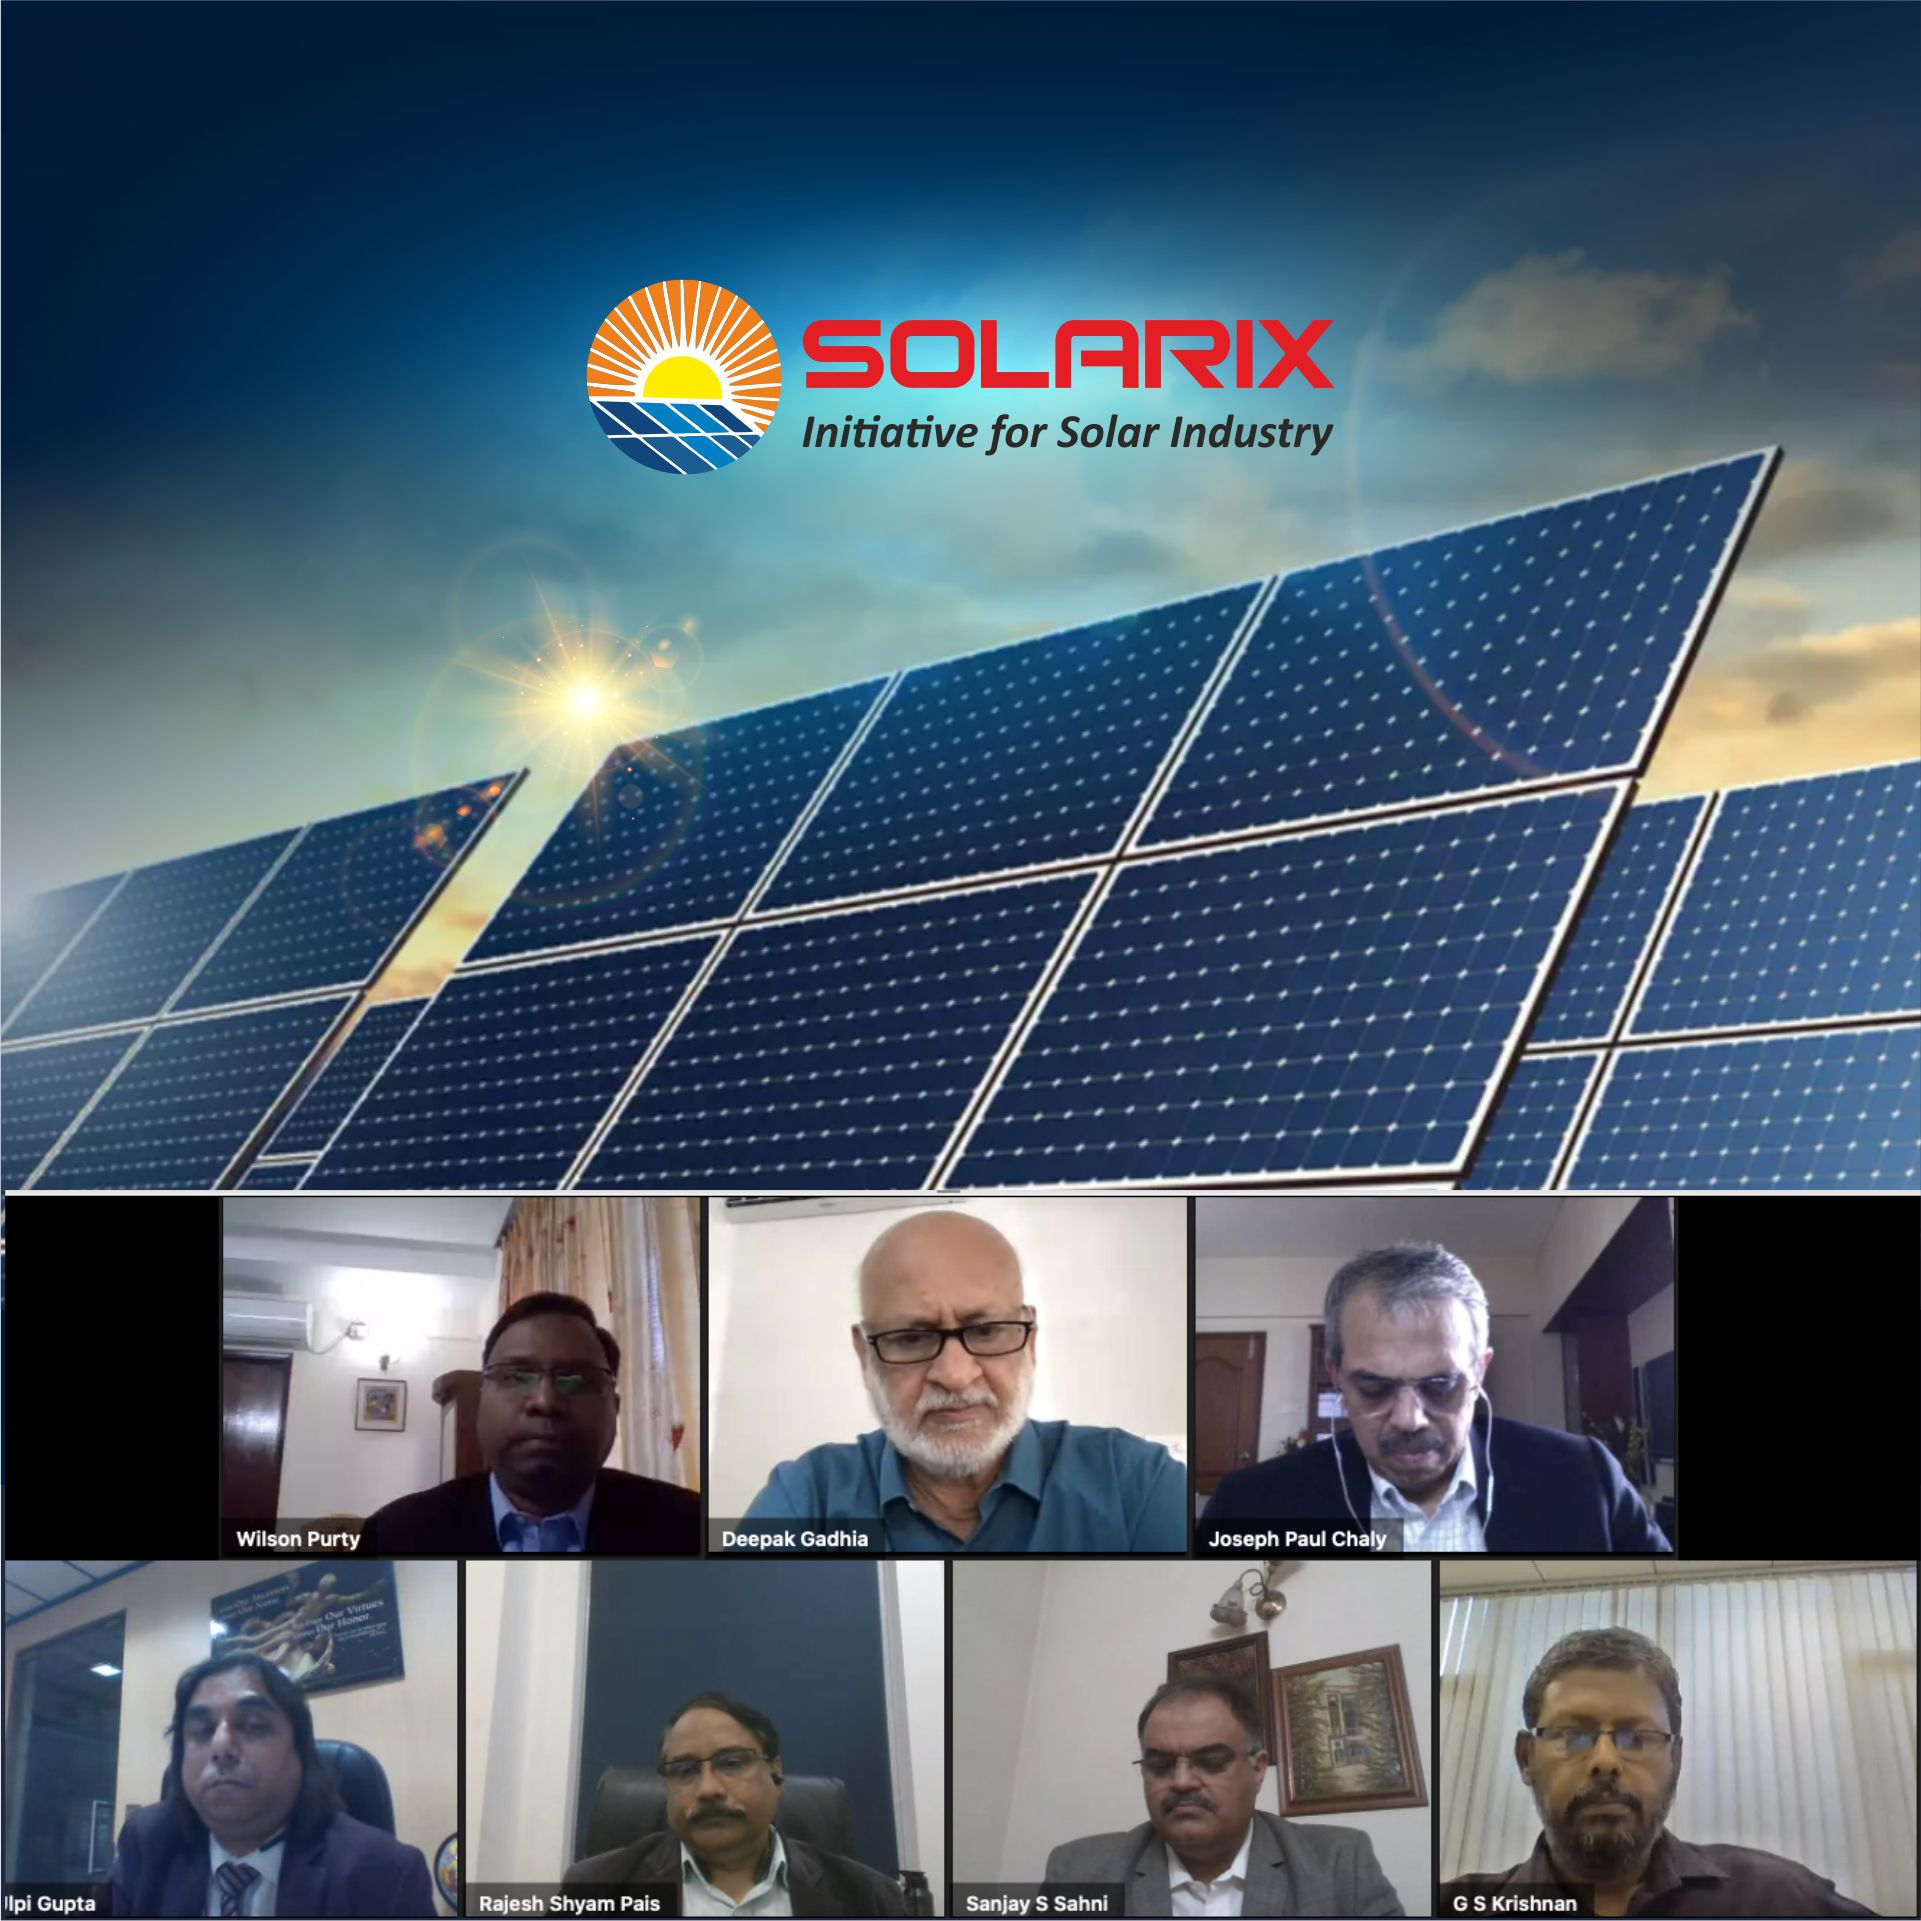 Solarix 2021 conducted virtually,  to align with country's National Solar Mission